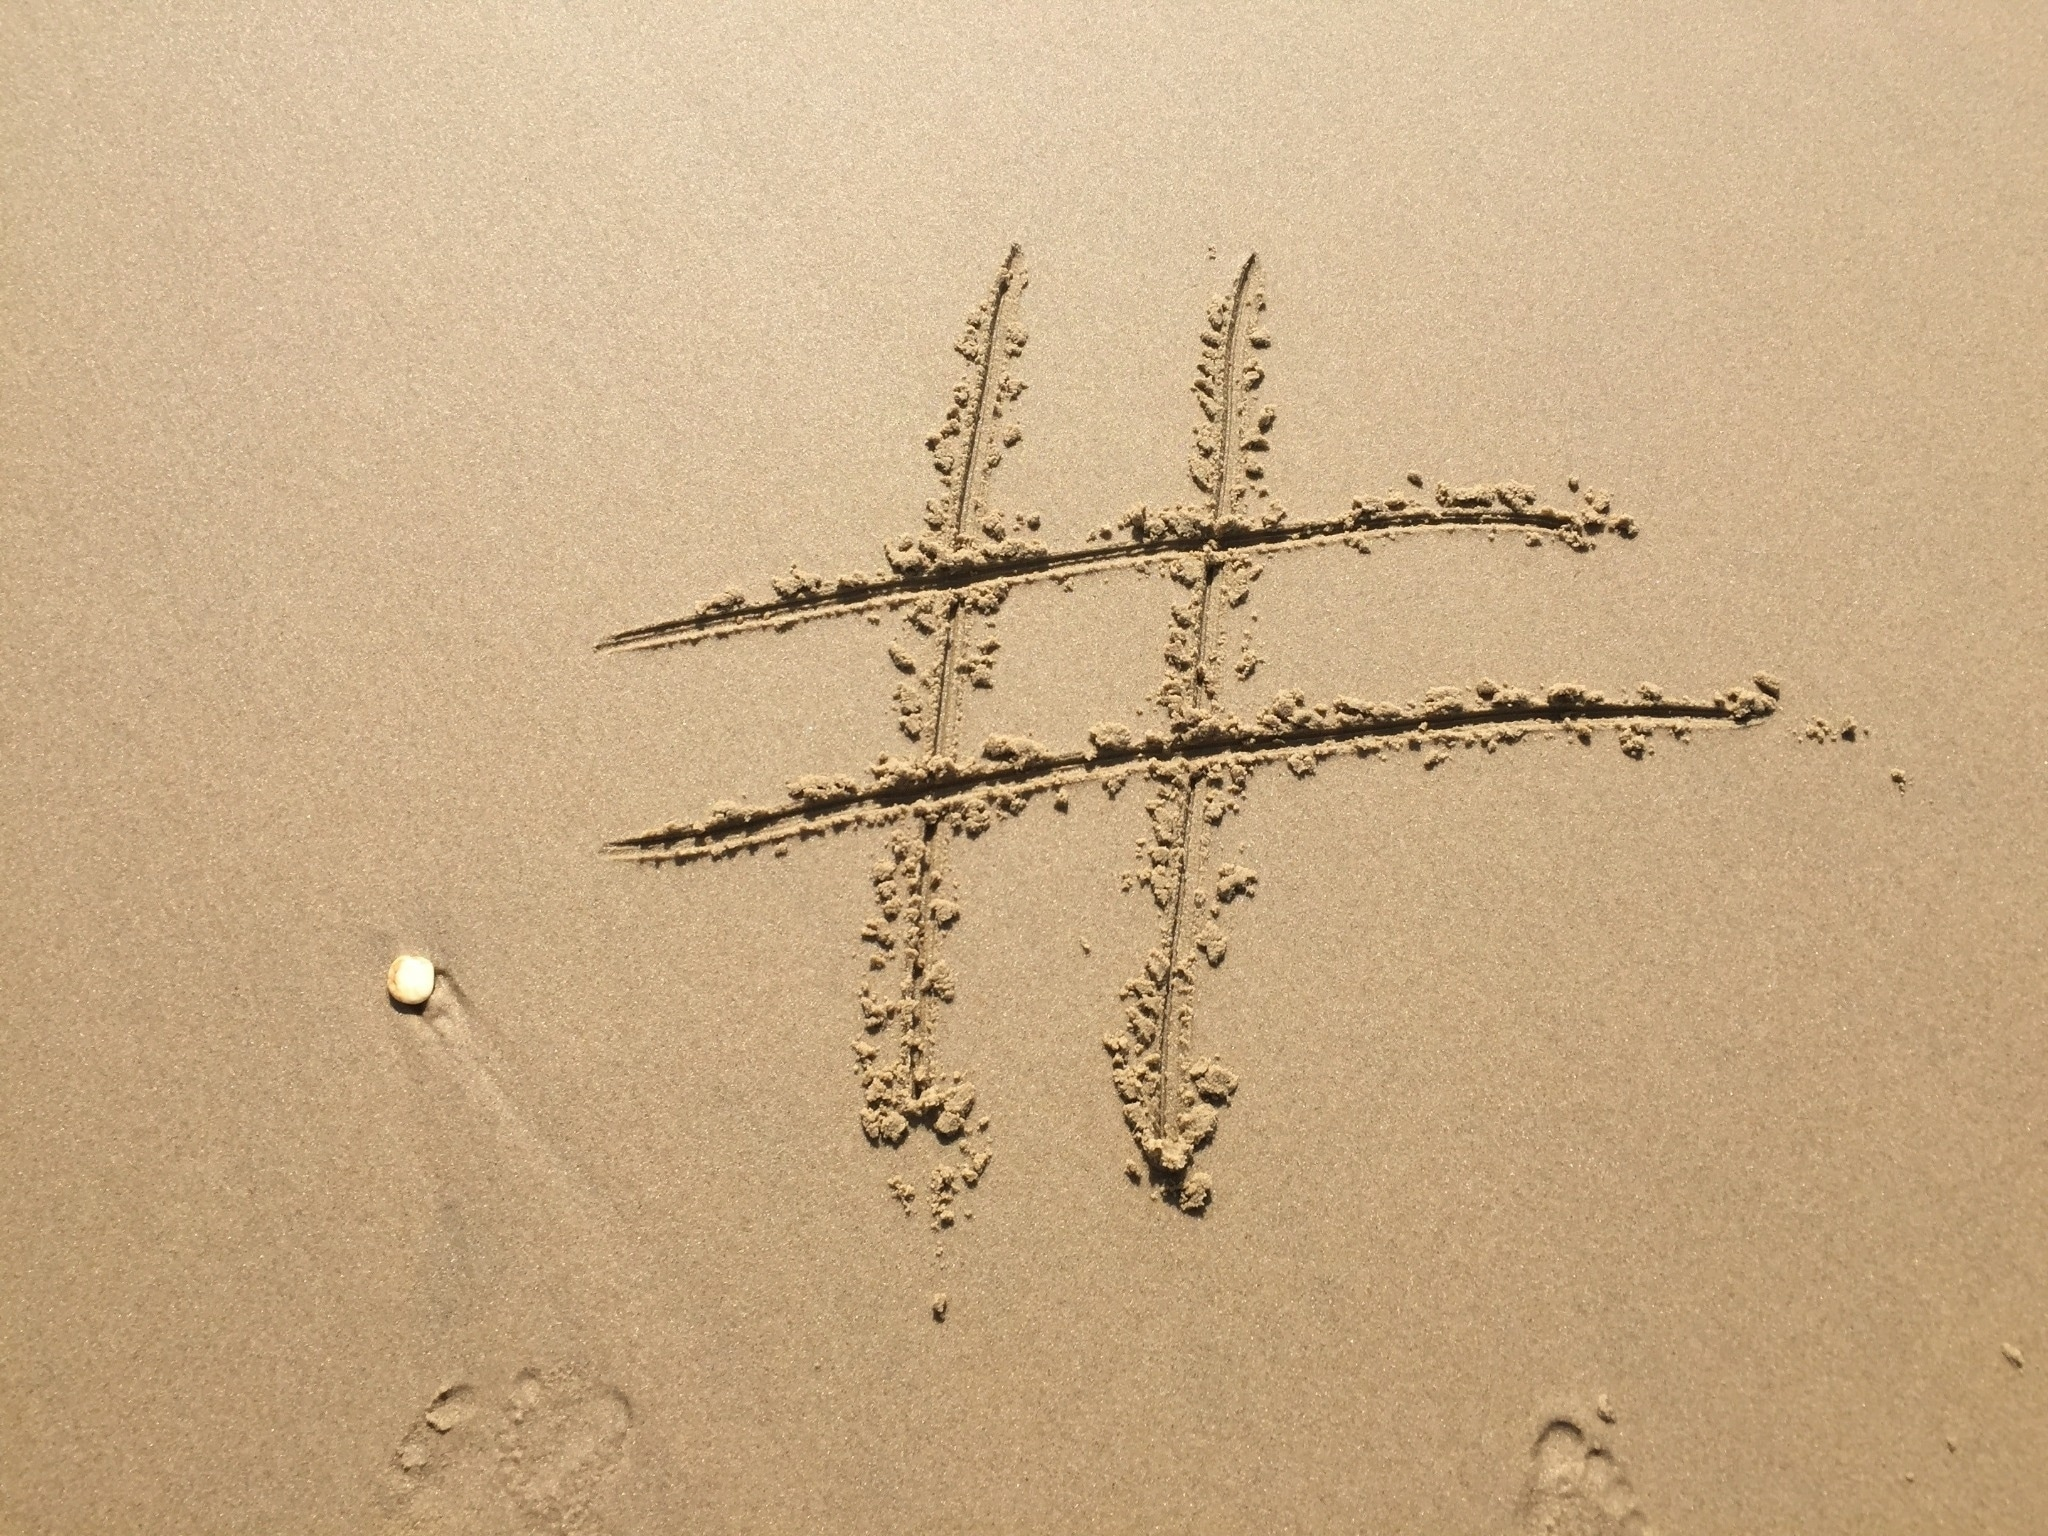 How to Use Instagram Hashtags (Without Being Spammy)